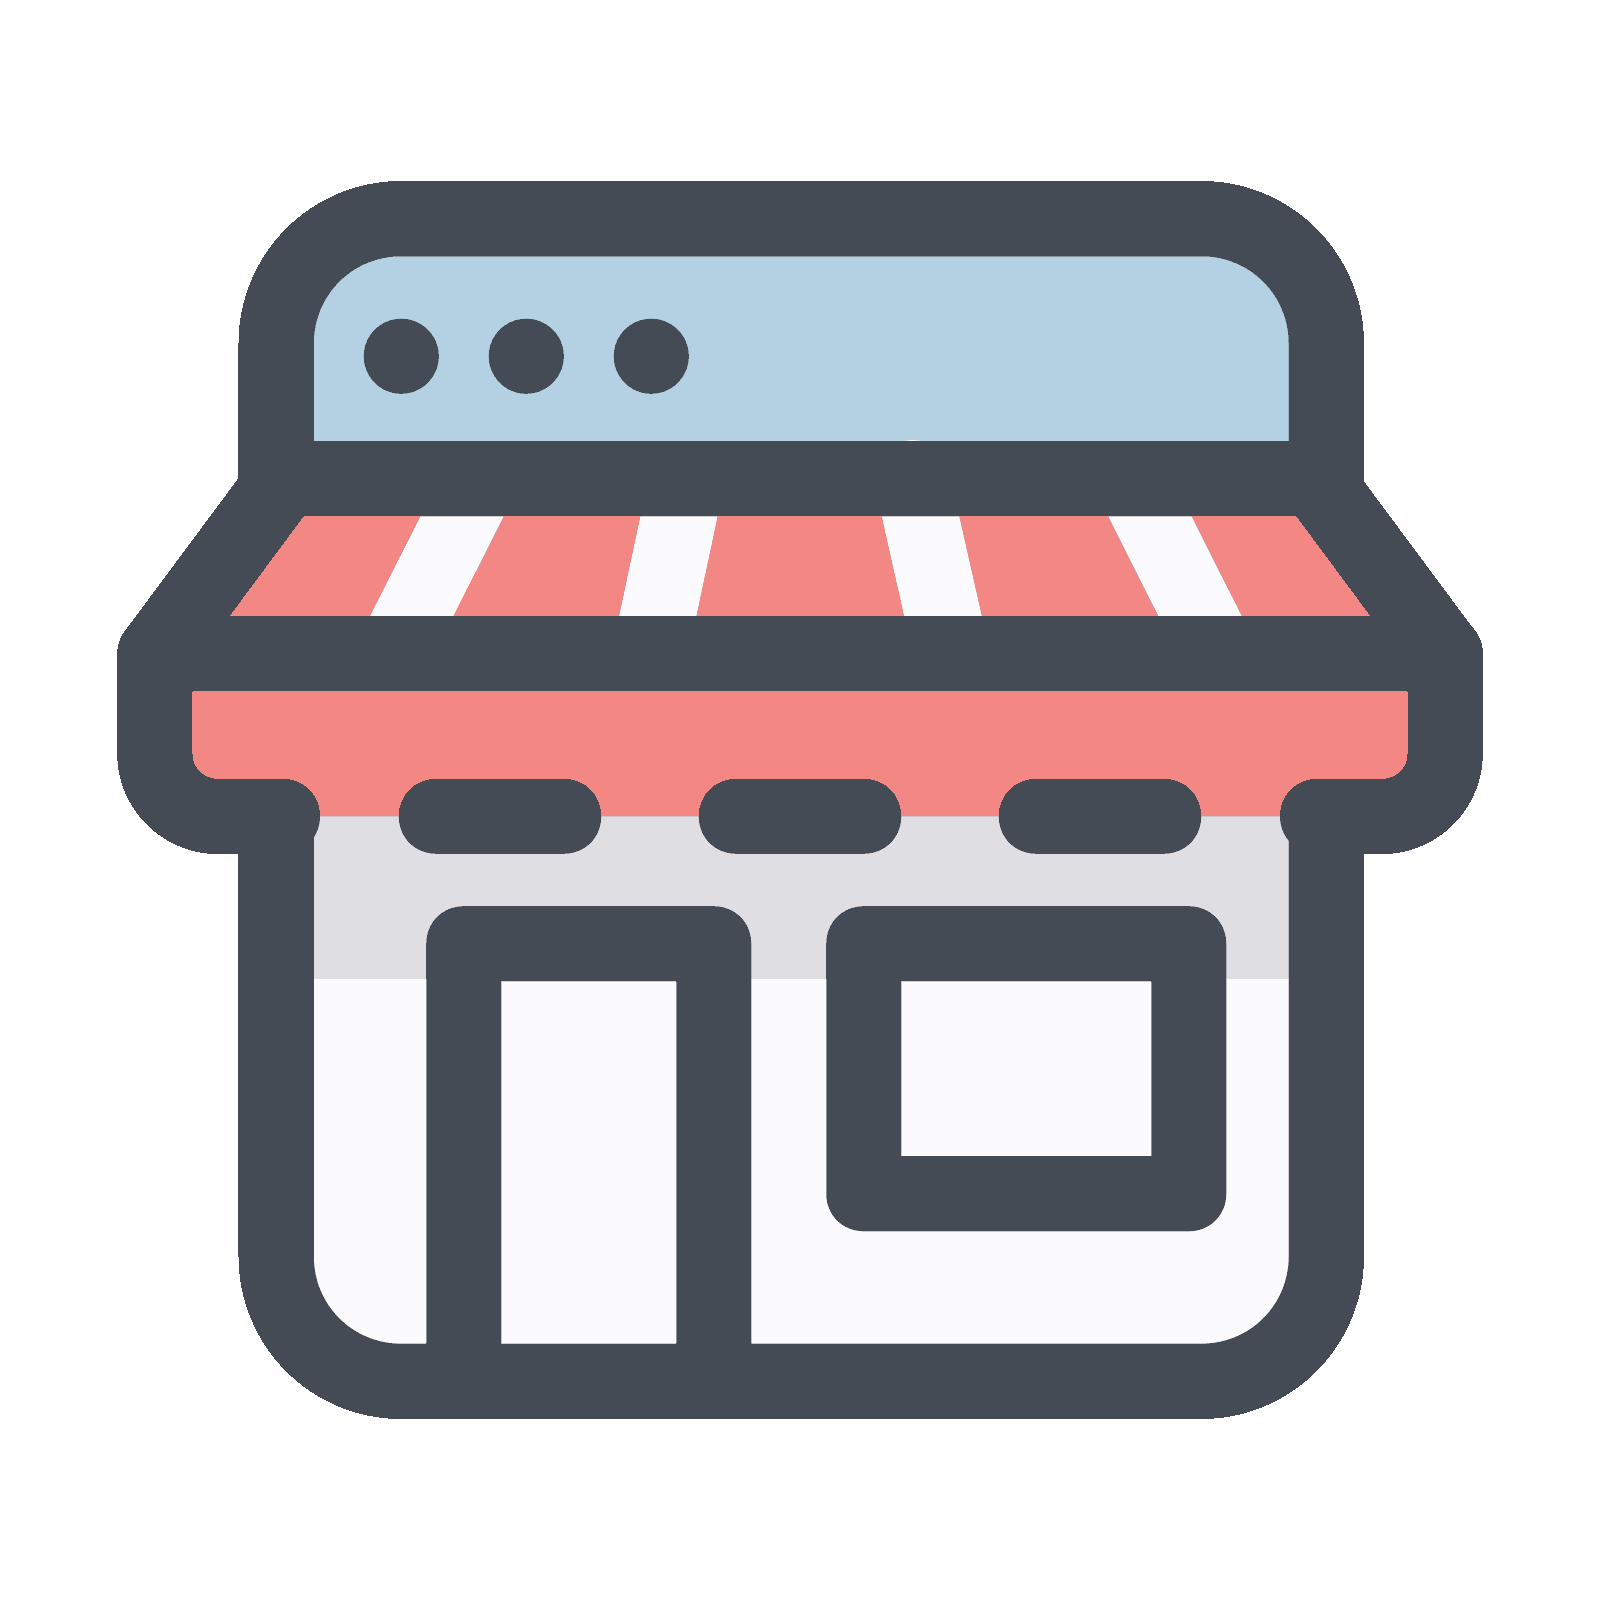 Store icon clipart labs. Png to vector online